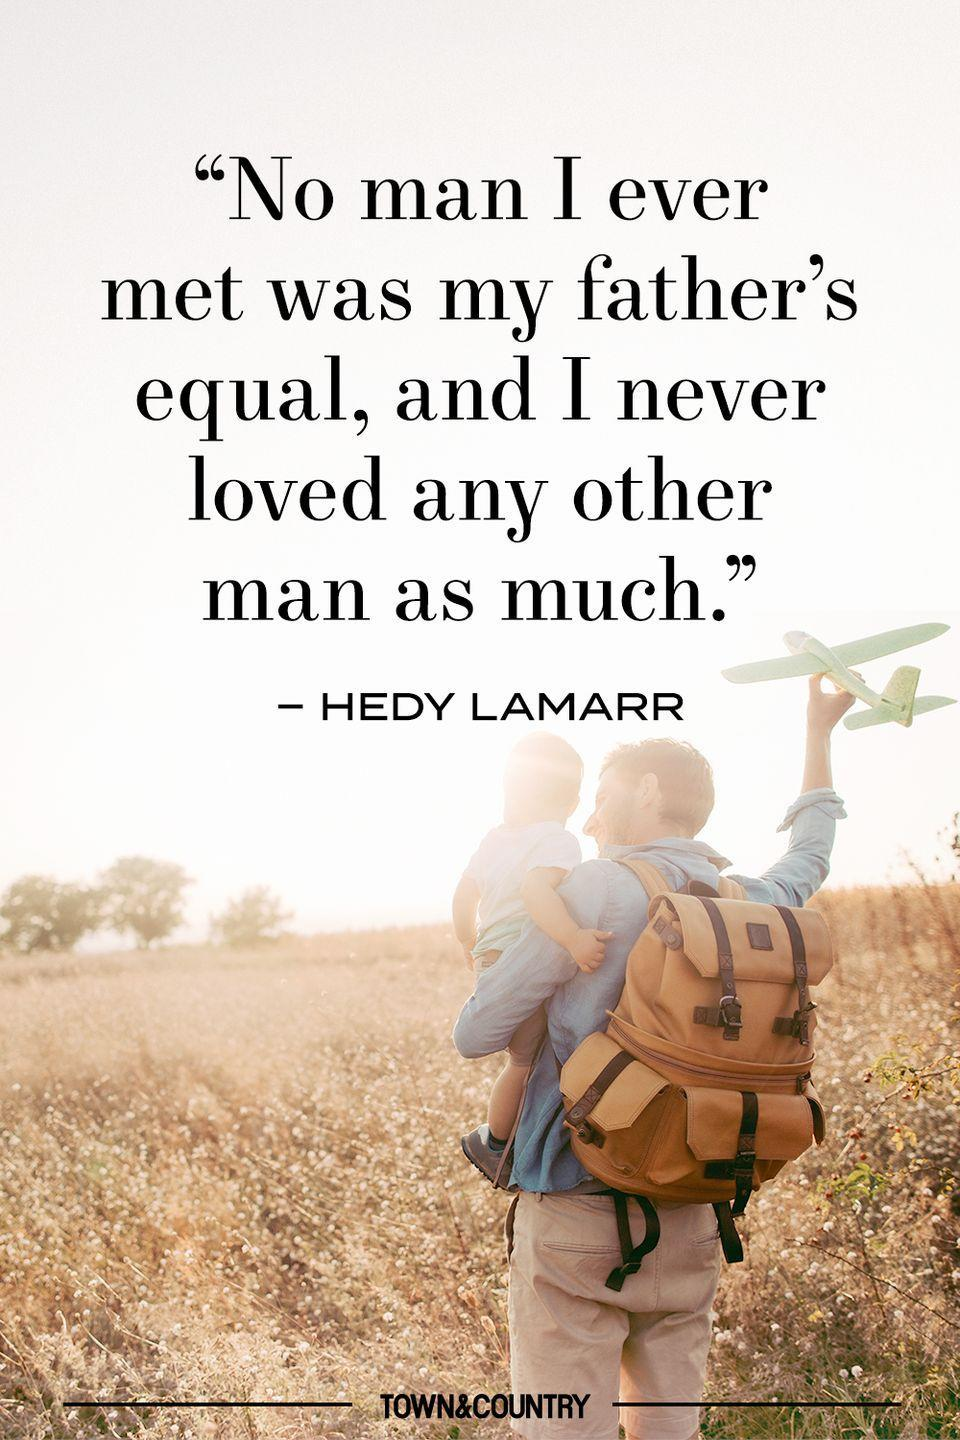 "<p>""No man I ever met was my father's equal, and I never loved any other man as much."" </p><p>– Hedy Lamarr</p>"